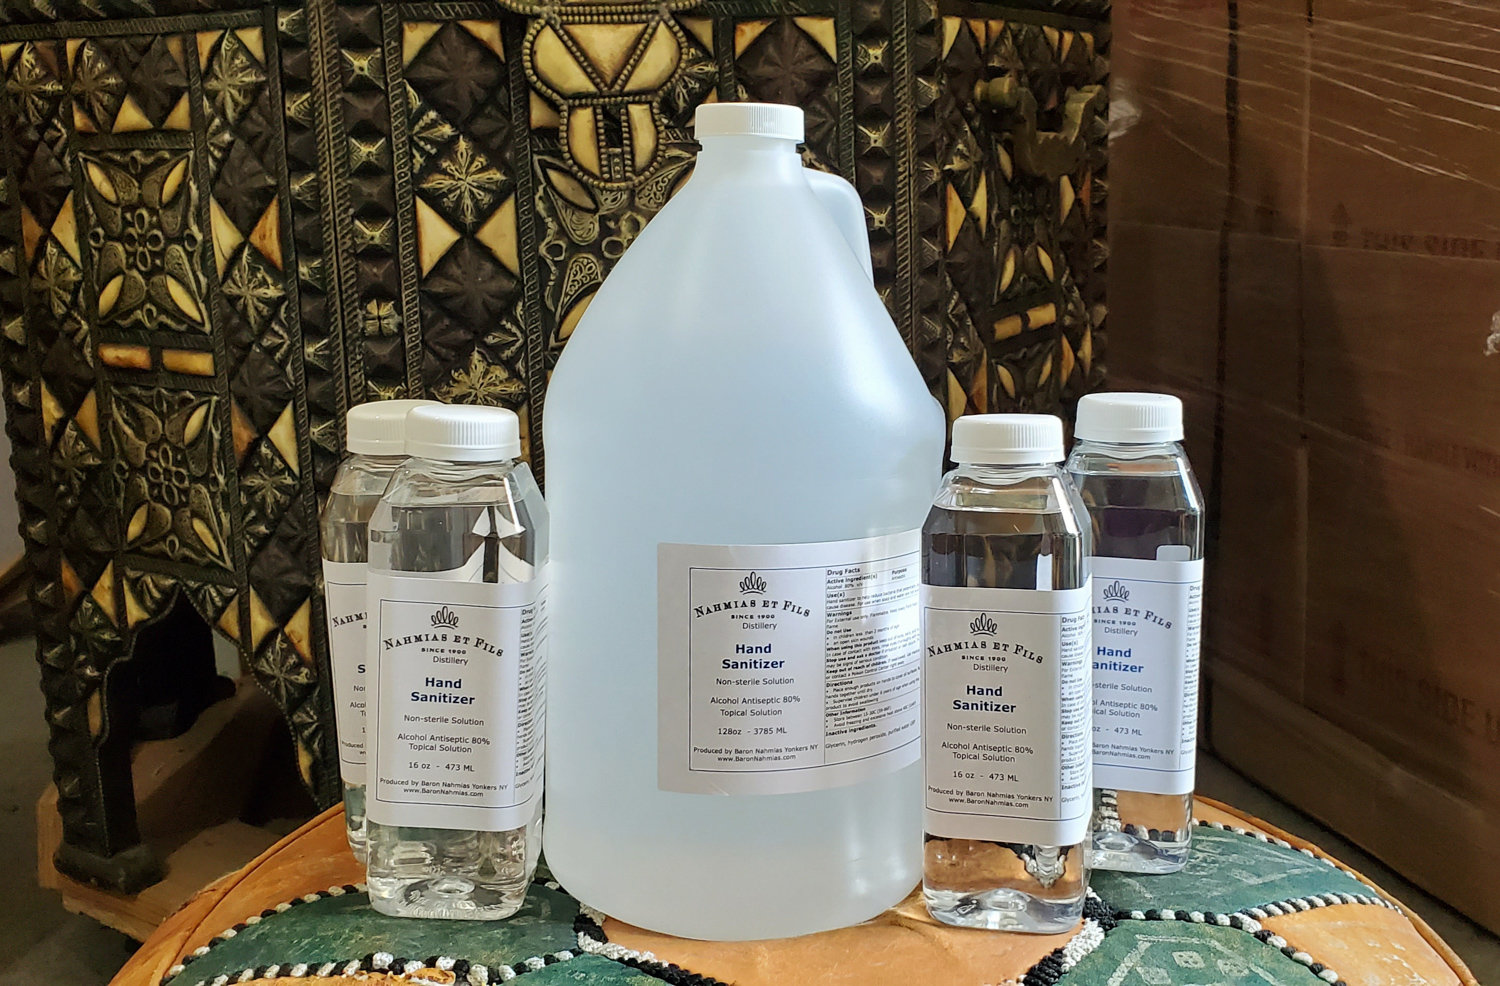 With hand sanitizer hard to come by on store shelves in the wake of the coronavirus pandemic, the Nahmias et Fils Distillery in Yonkers transitioned from producing liquor to hand sanitizer. North Riverdale's David and Dorit Nahmias own the distillery.